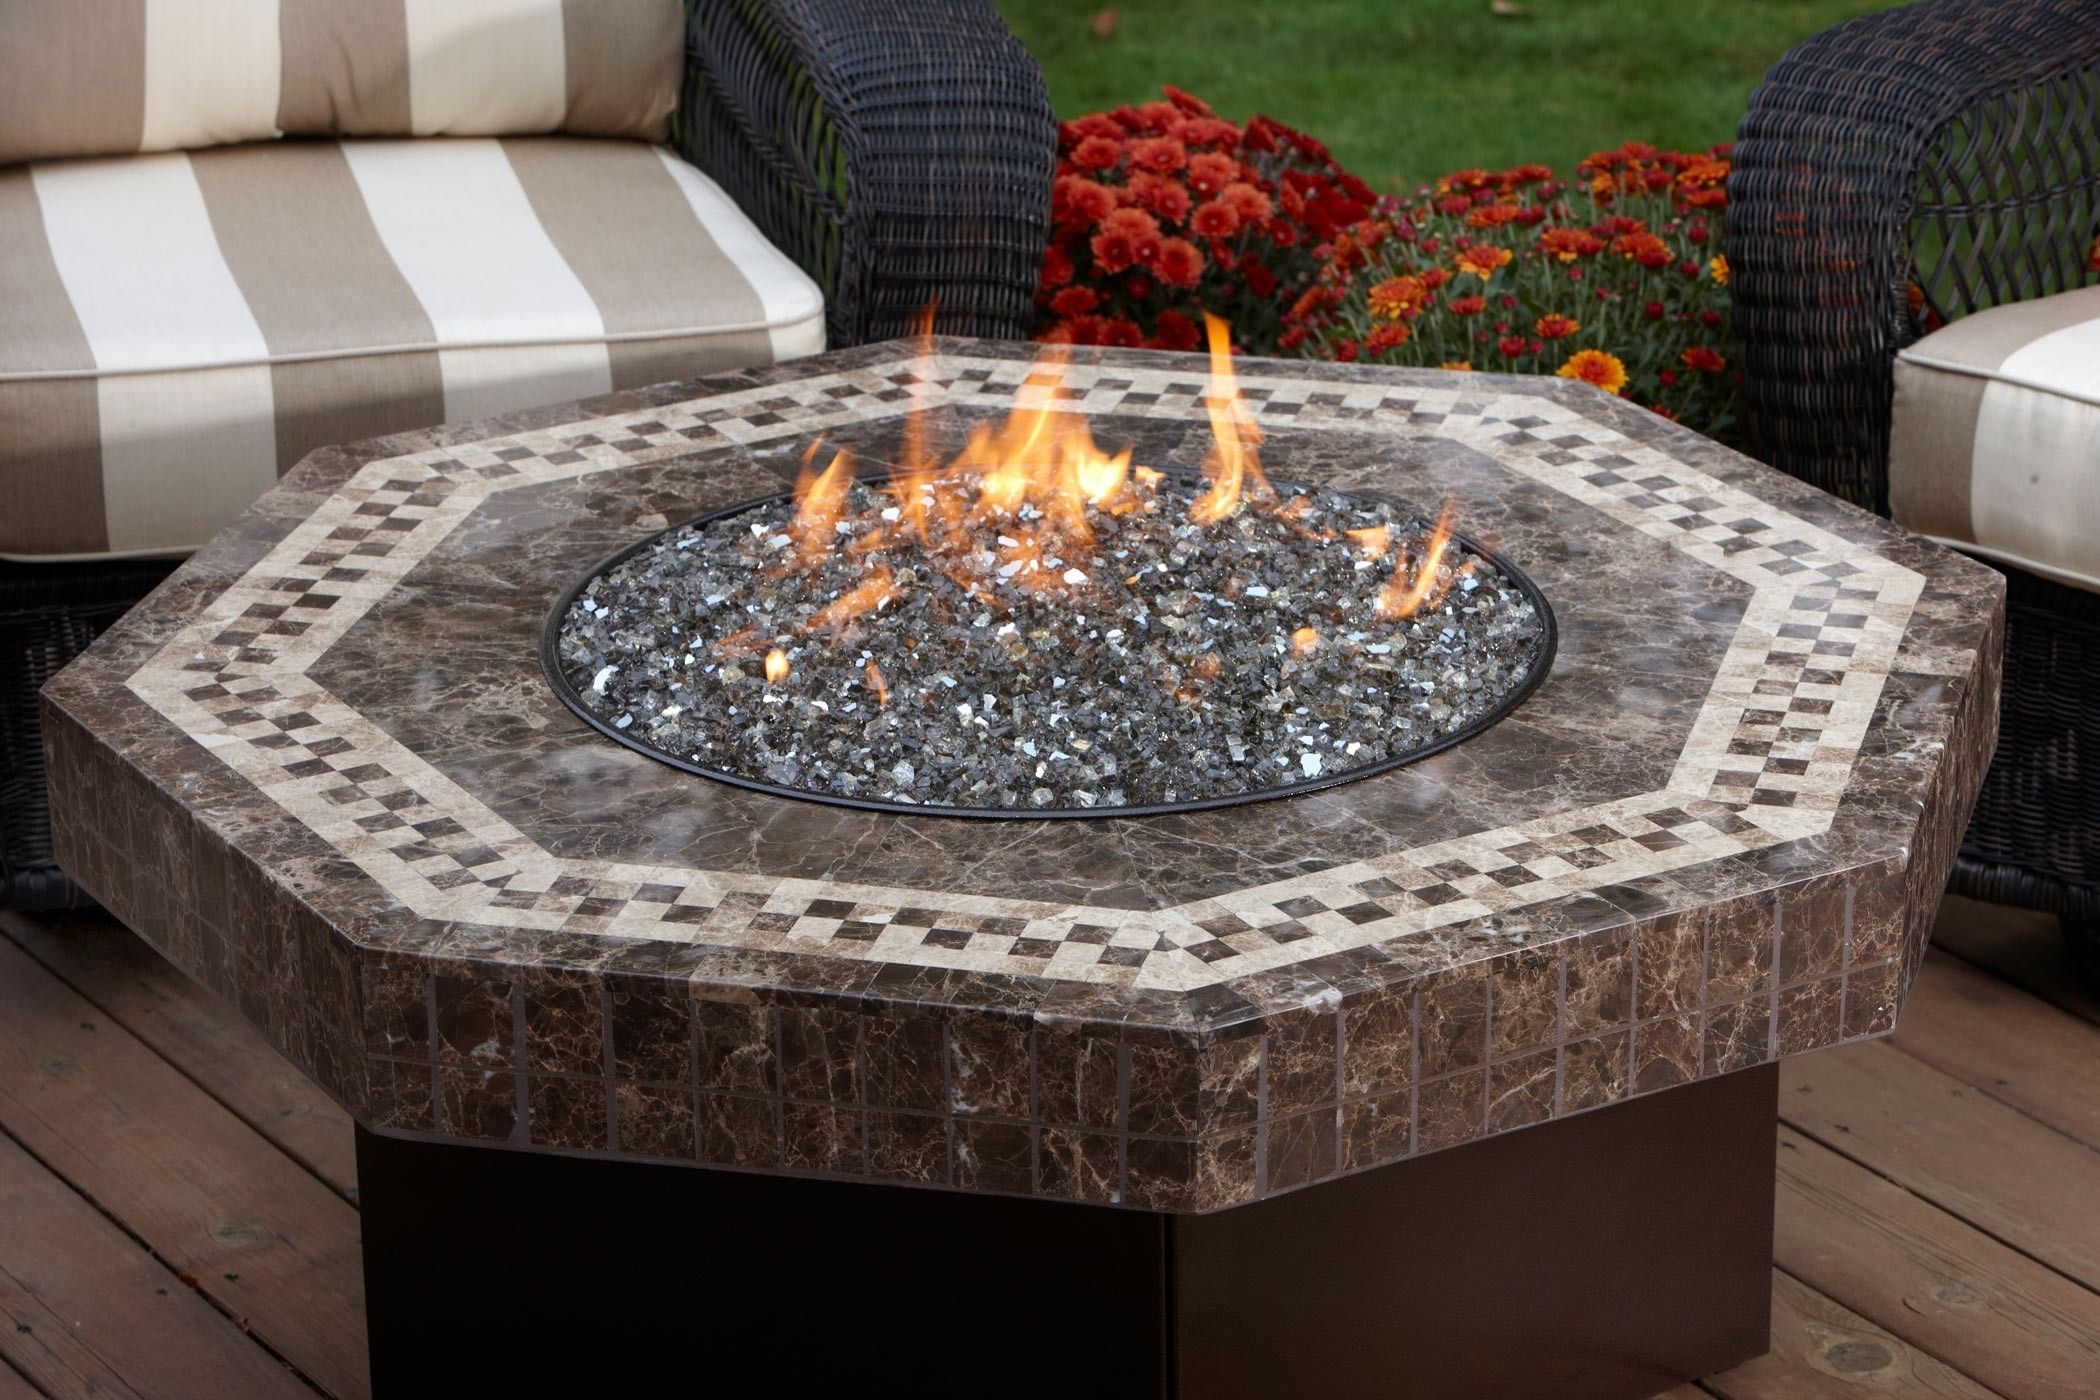 Venetian Marble Fire Table Gas Fire Pits All Backyard Fun intended for measurements 2100 X 1400